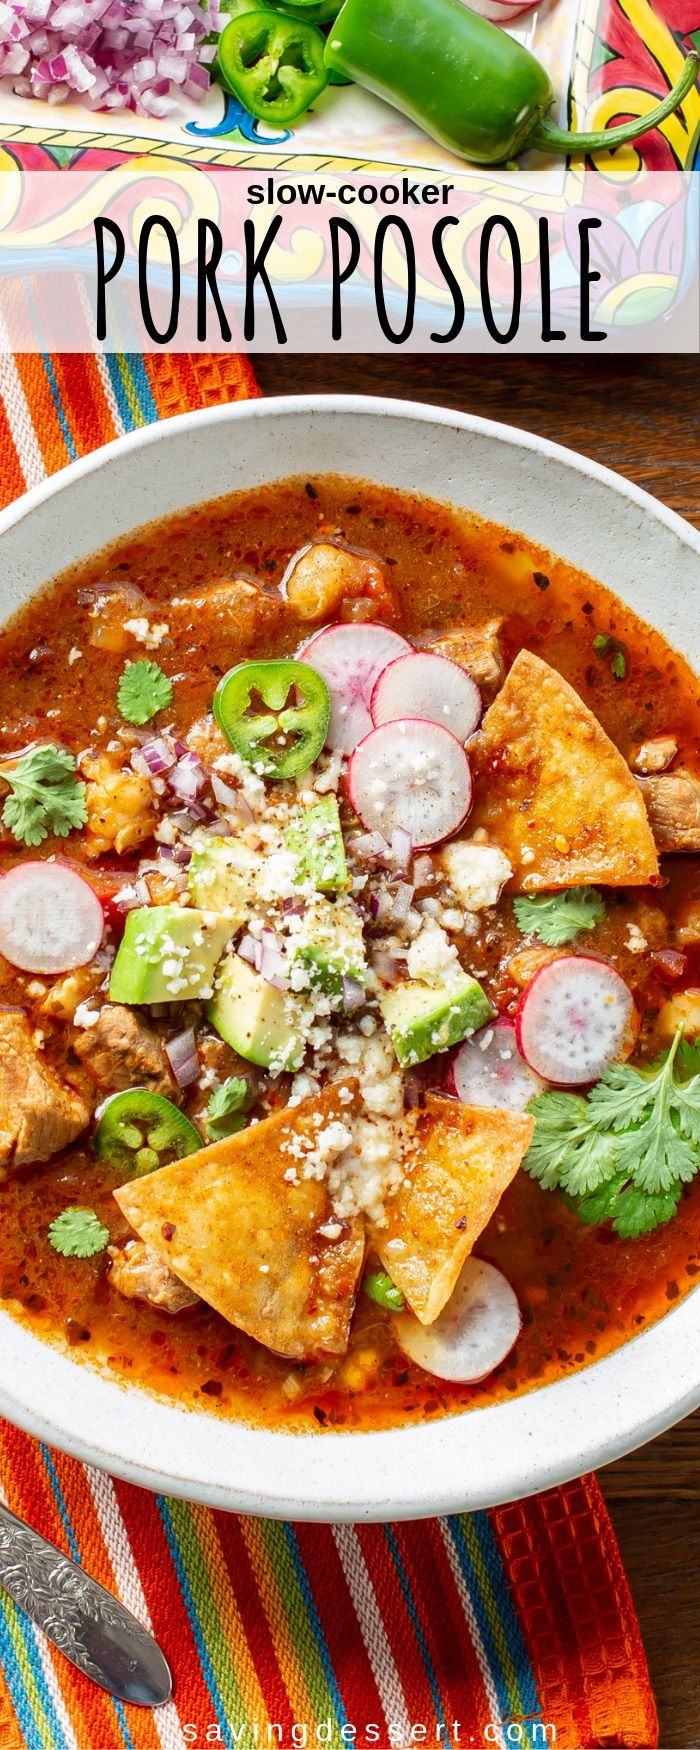 Slow-Cooker Pork Posole #slowcookerrecipes